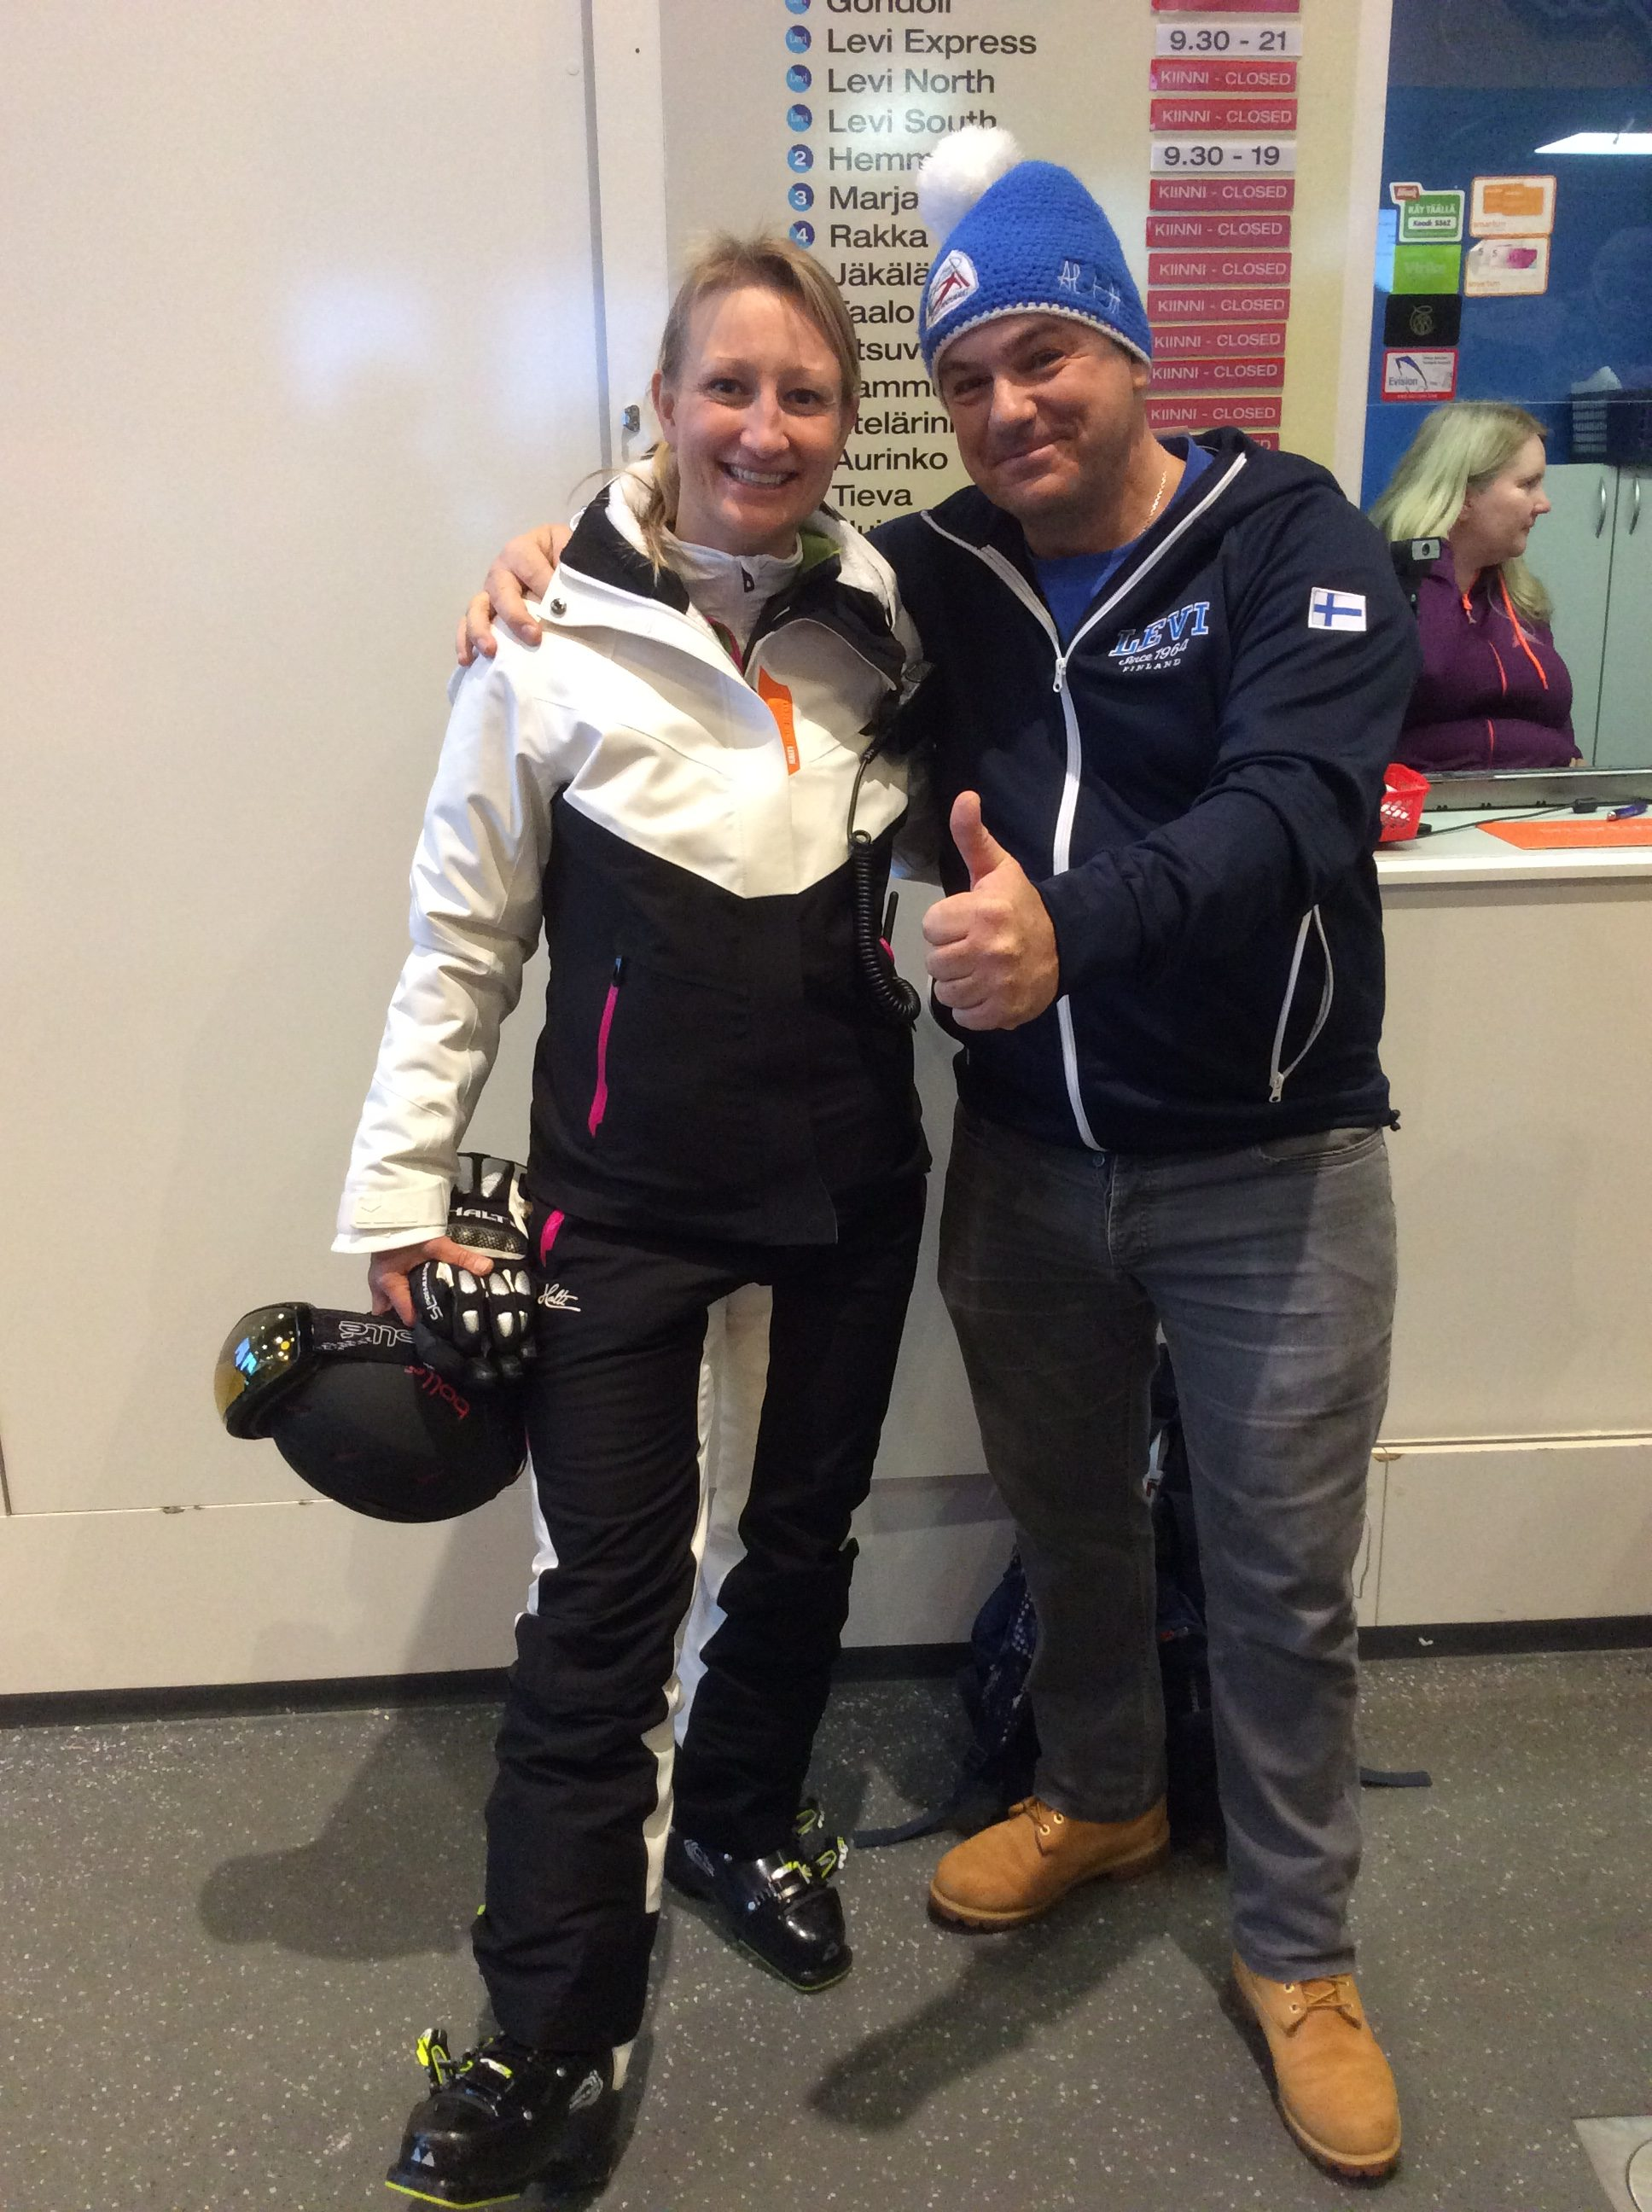 Local retired World Cup racer Tanja with one the Alpine Ski World Cup Fan Community at LEVI World Cup 2016